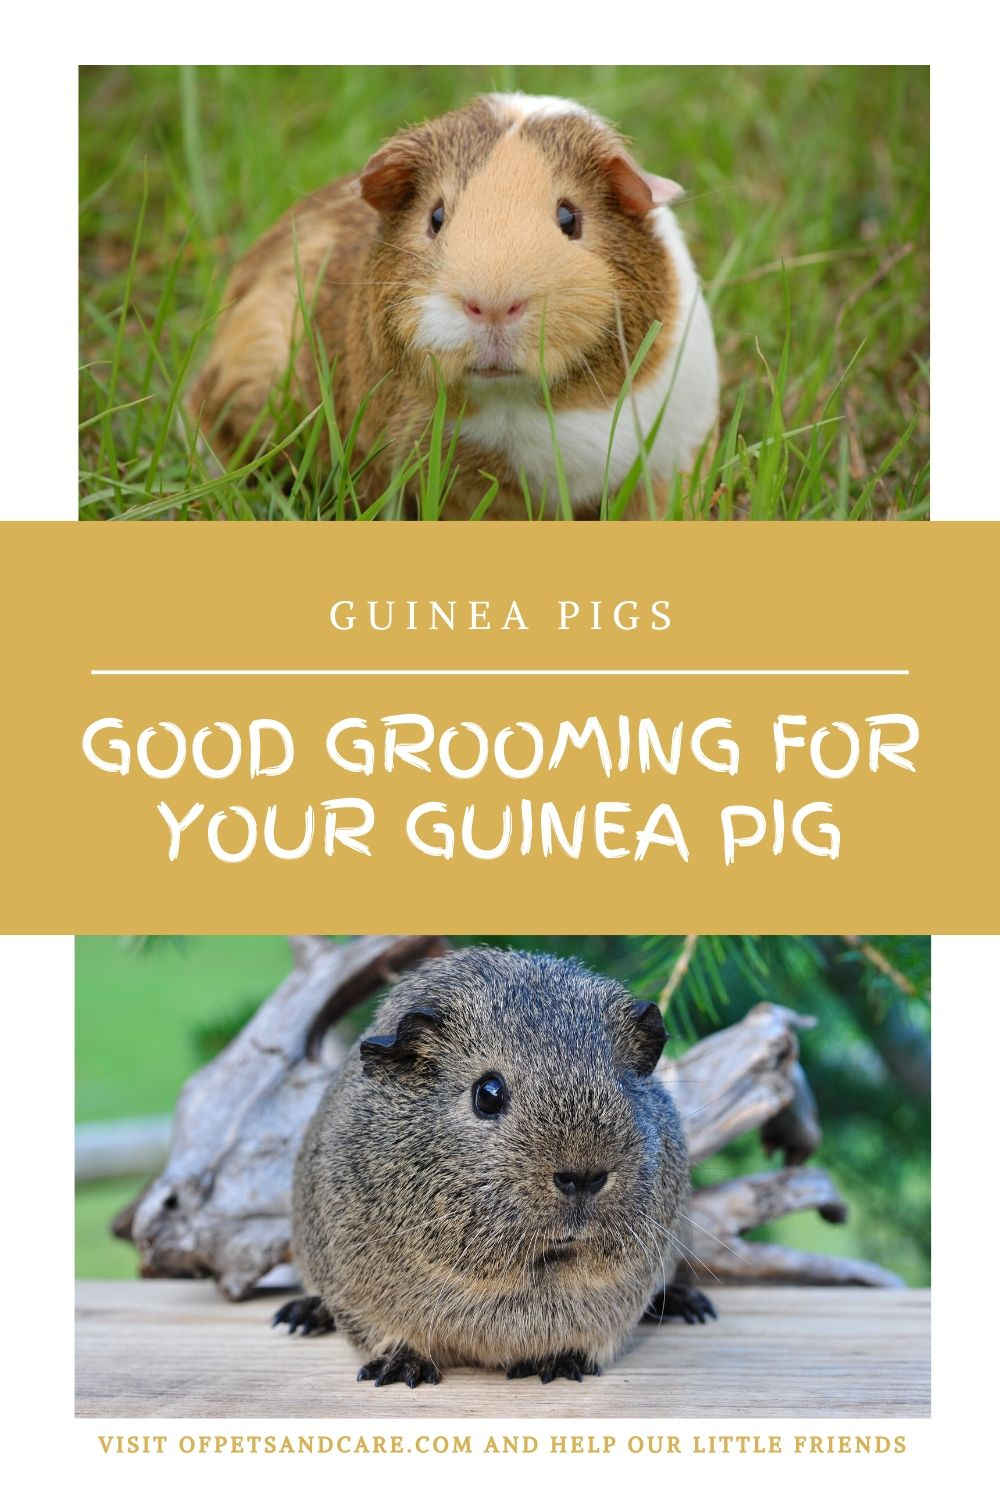 Good Grooming for Your Guinea Pig,